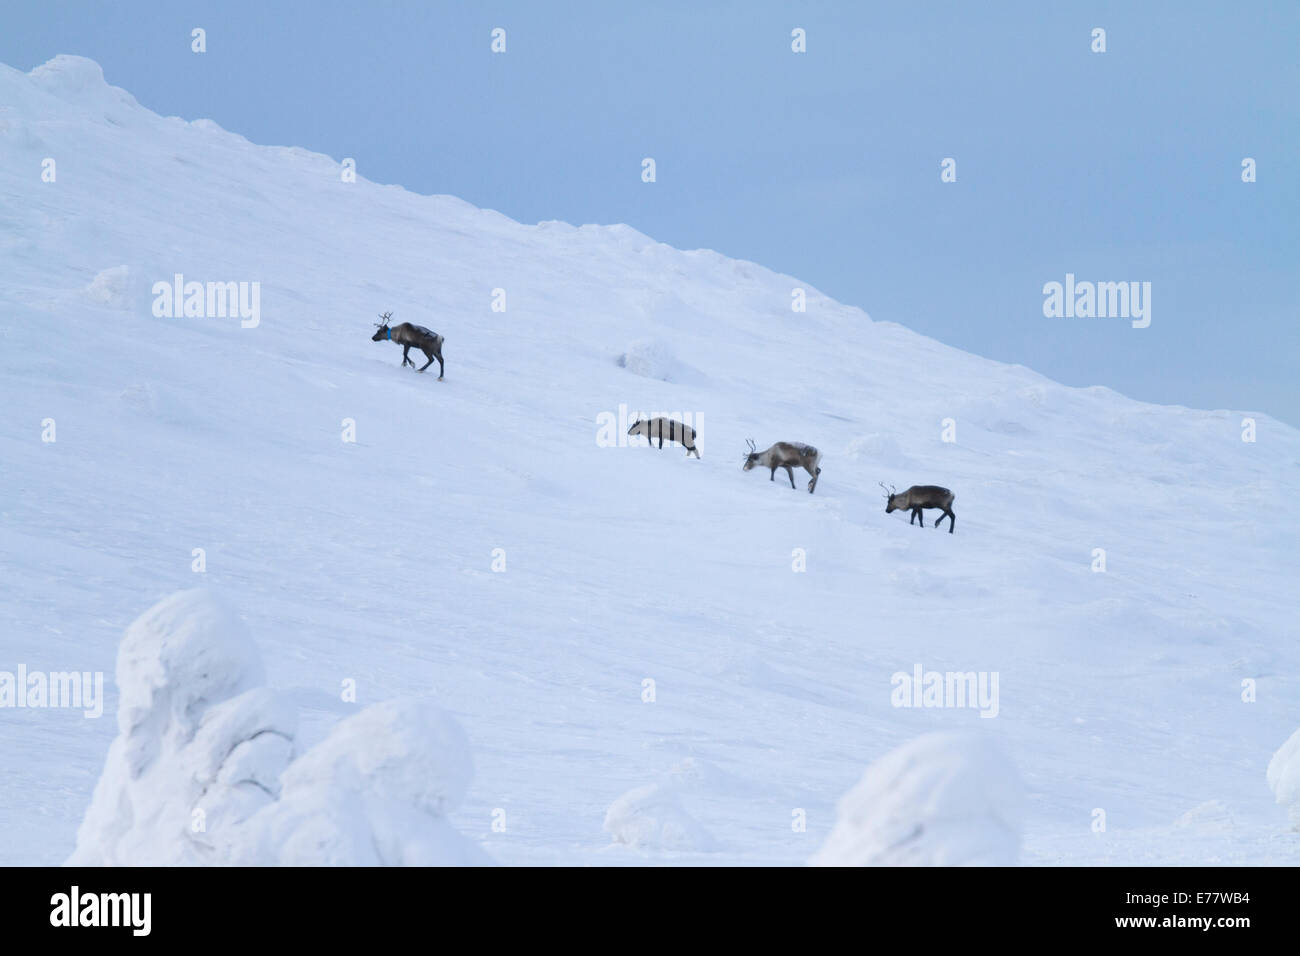 Four reindeers walking on a mountain in winter time - Stock Image